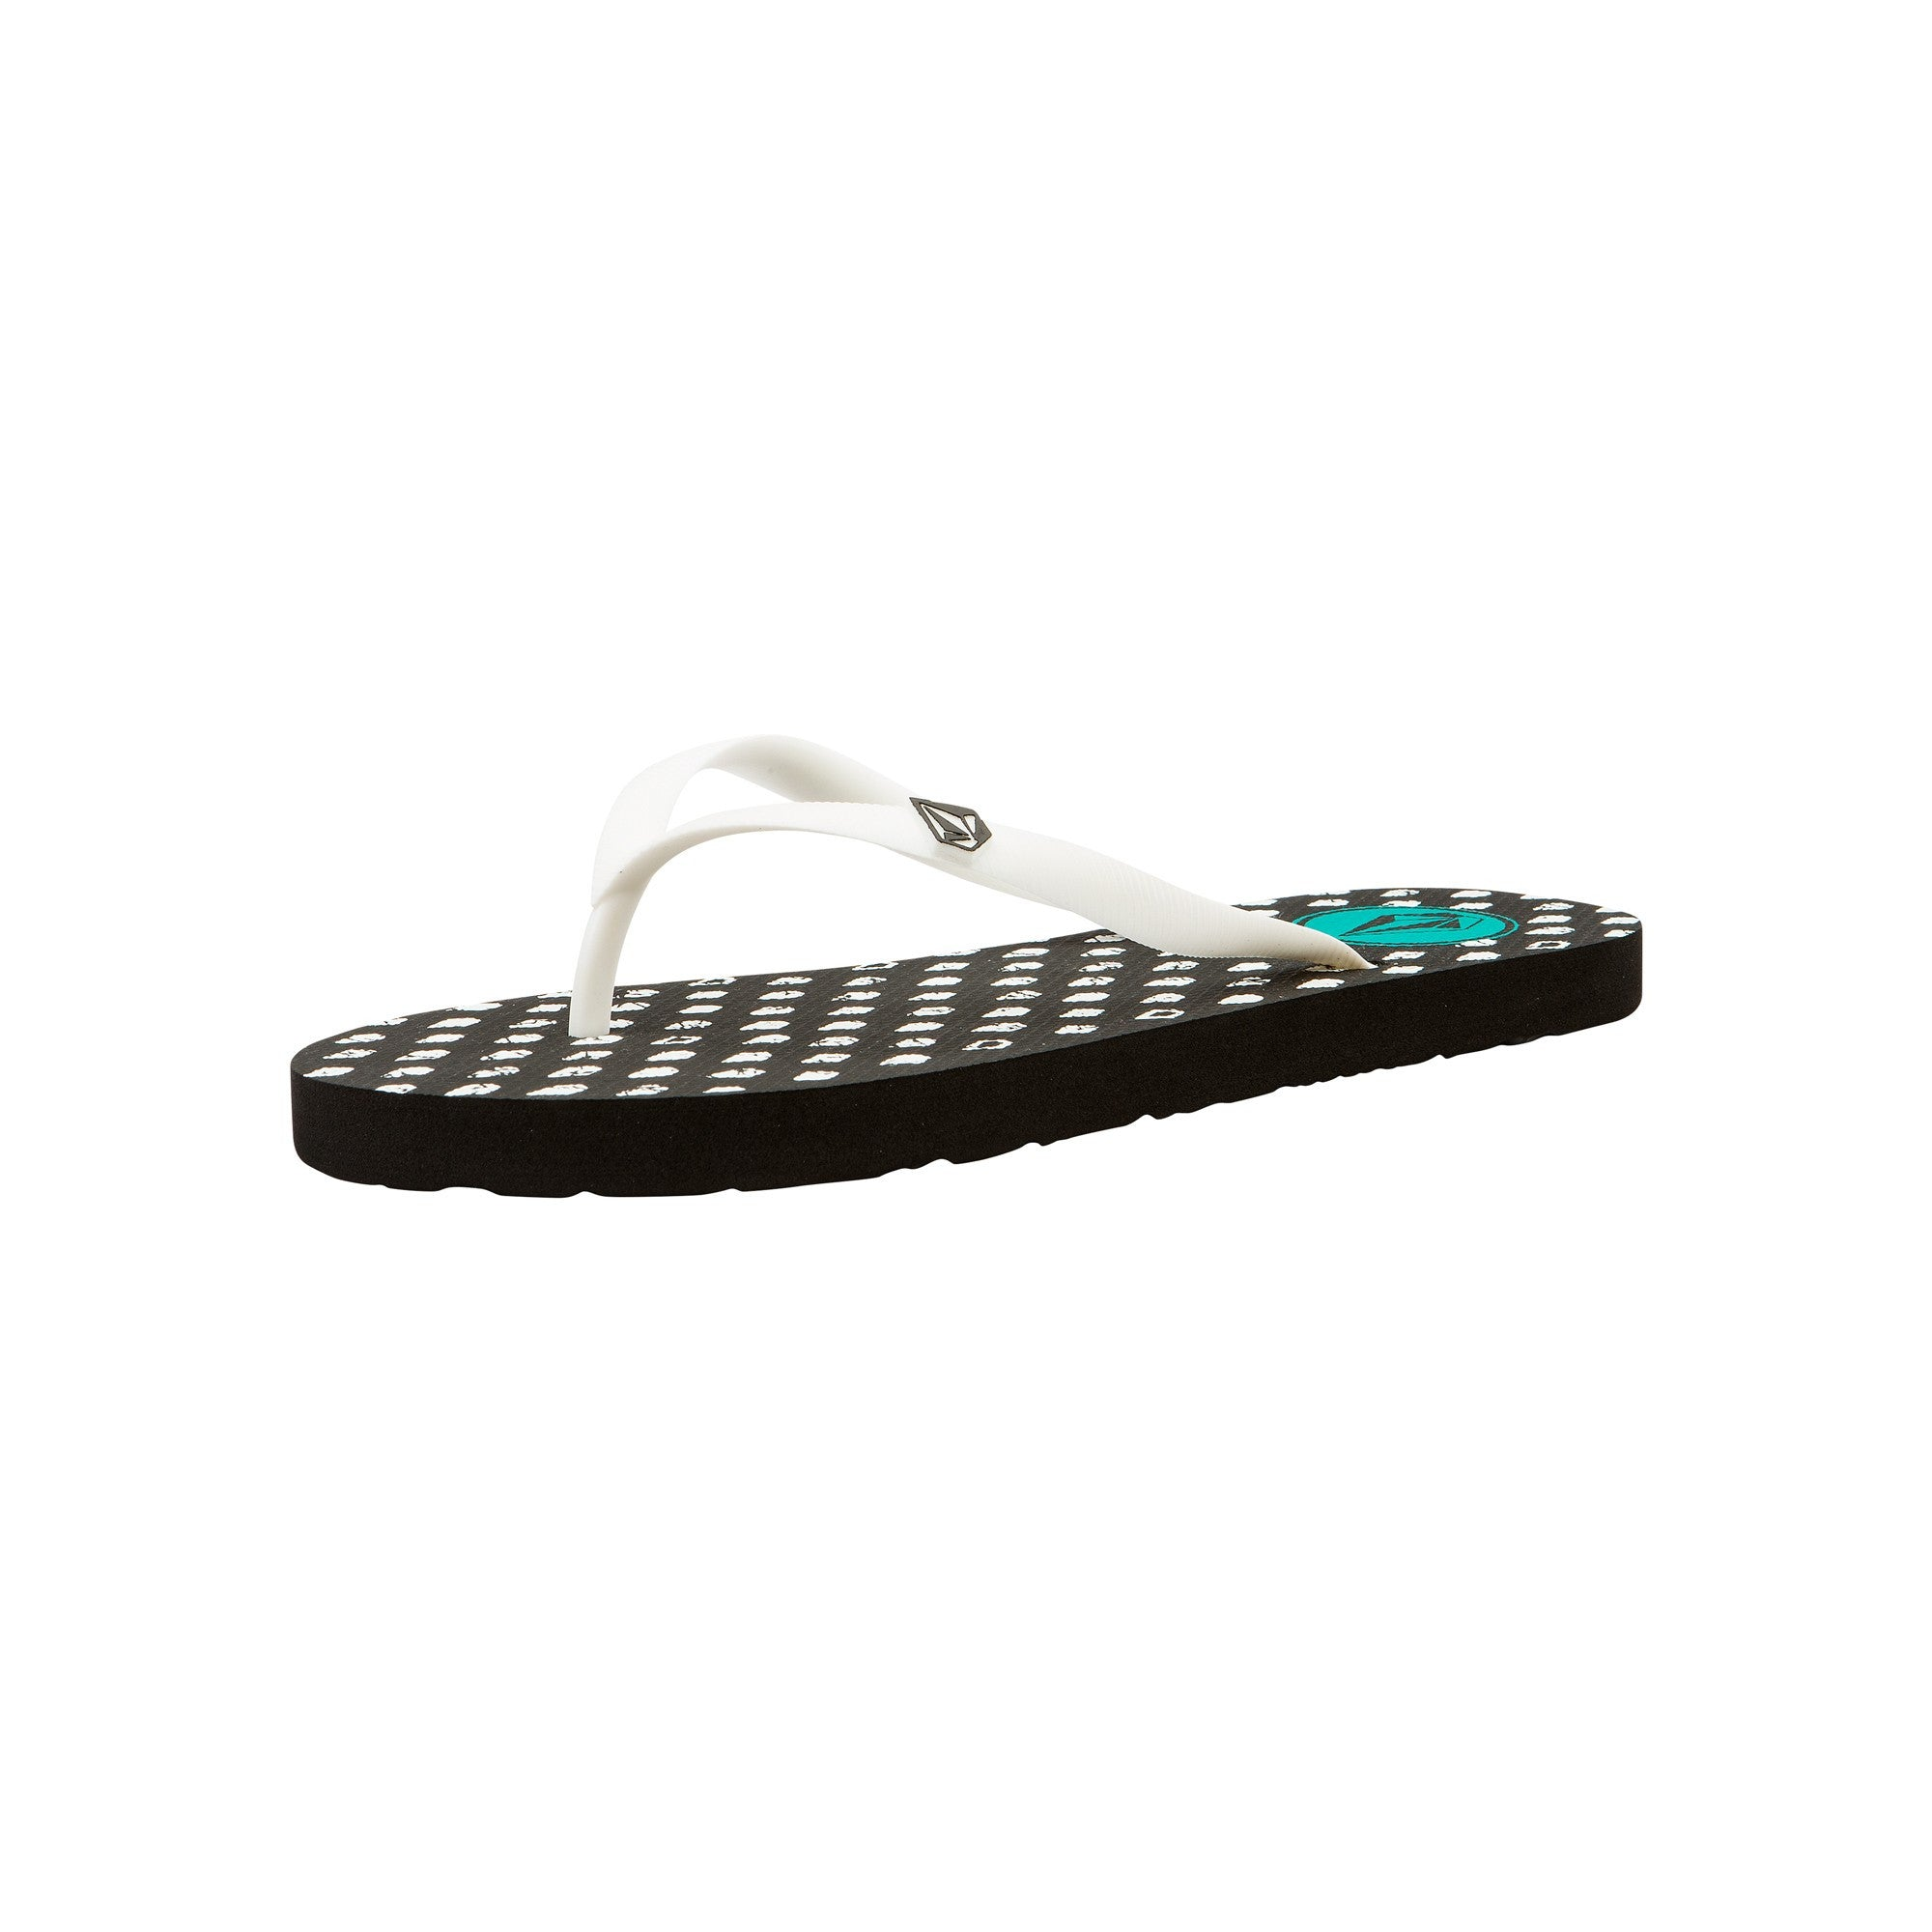 438e836ab Volcom Girls Rocking 2 Youth Sandals Black Combo – Current Apparel